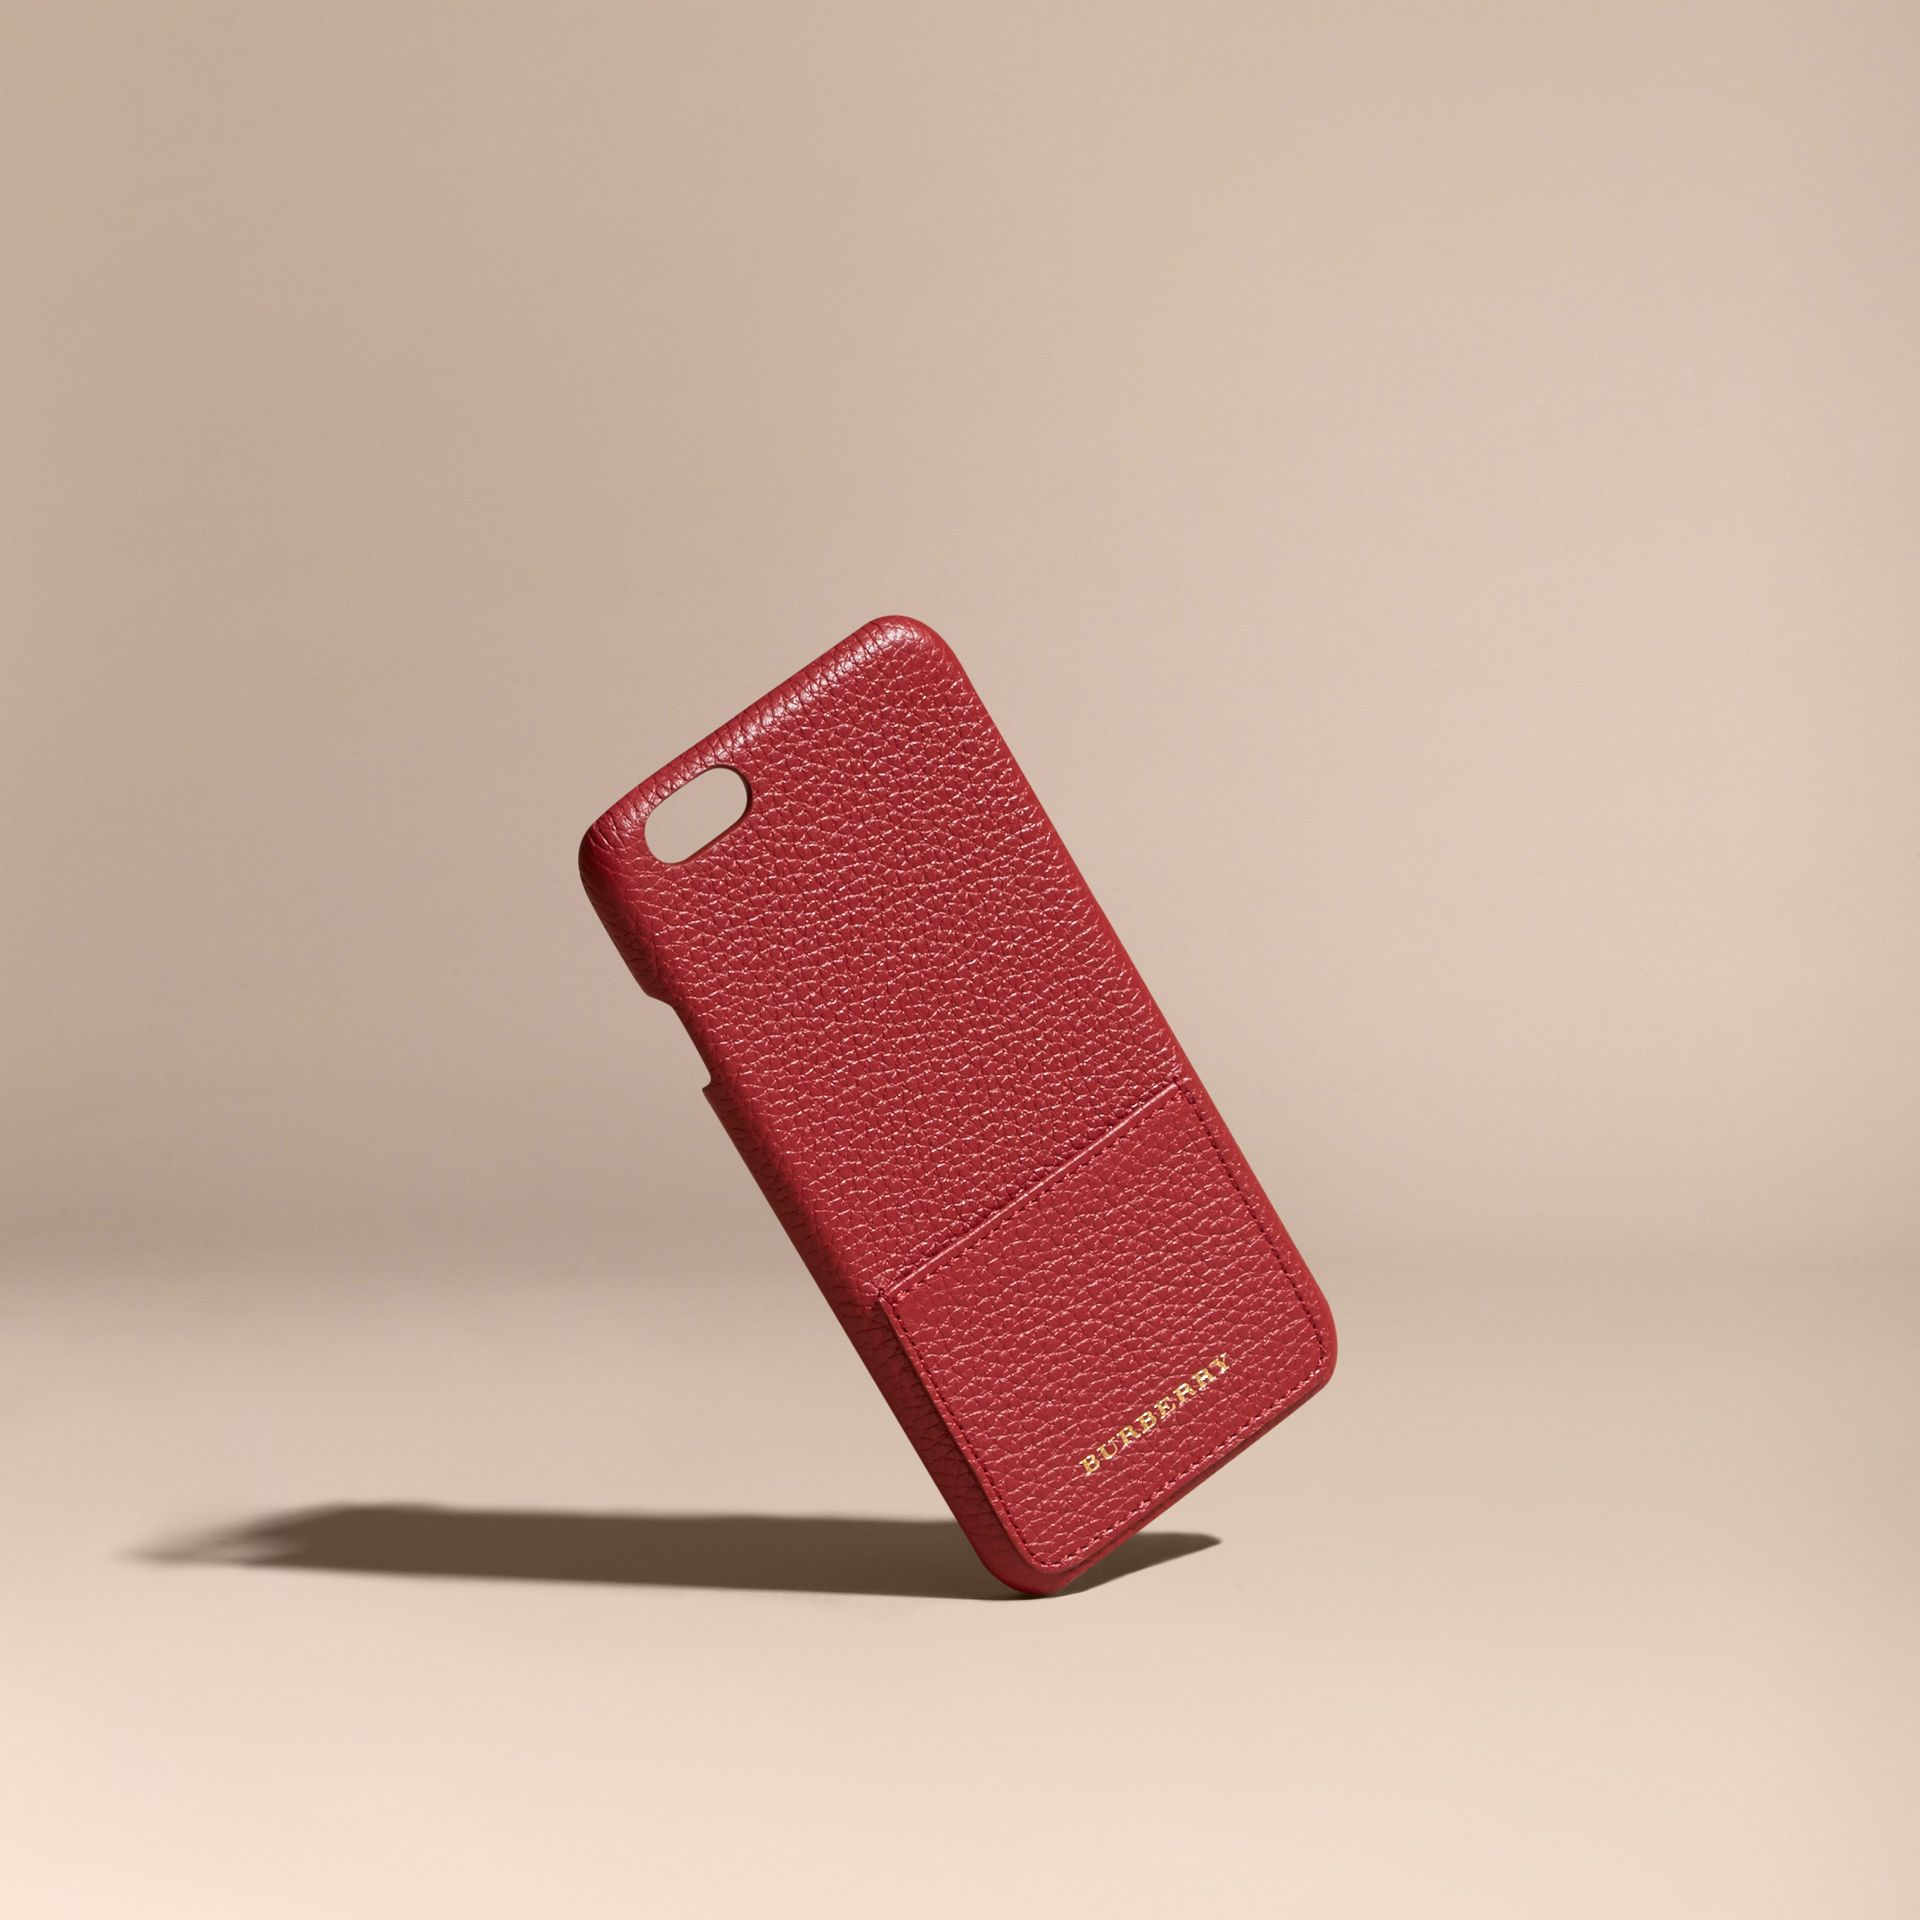 Grainy Leather iPhone 6 Case in Parade Red - gallery image 1